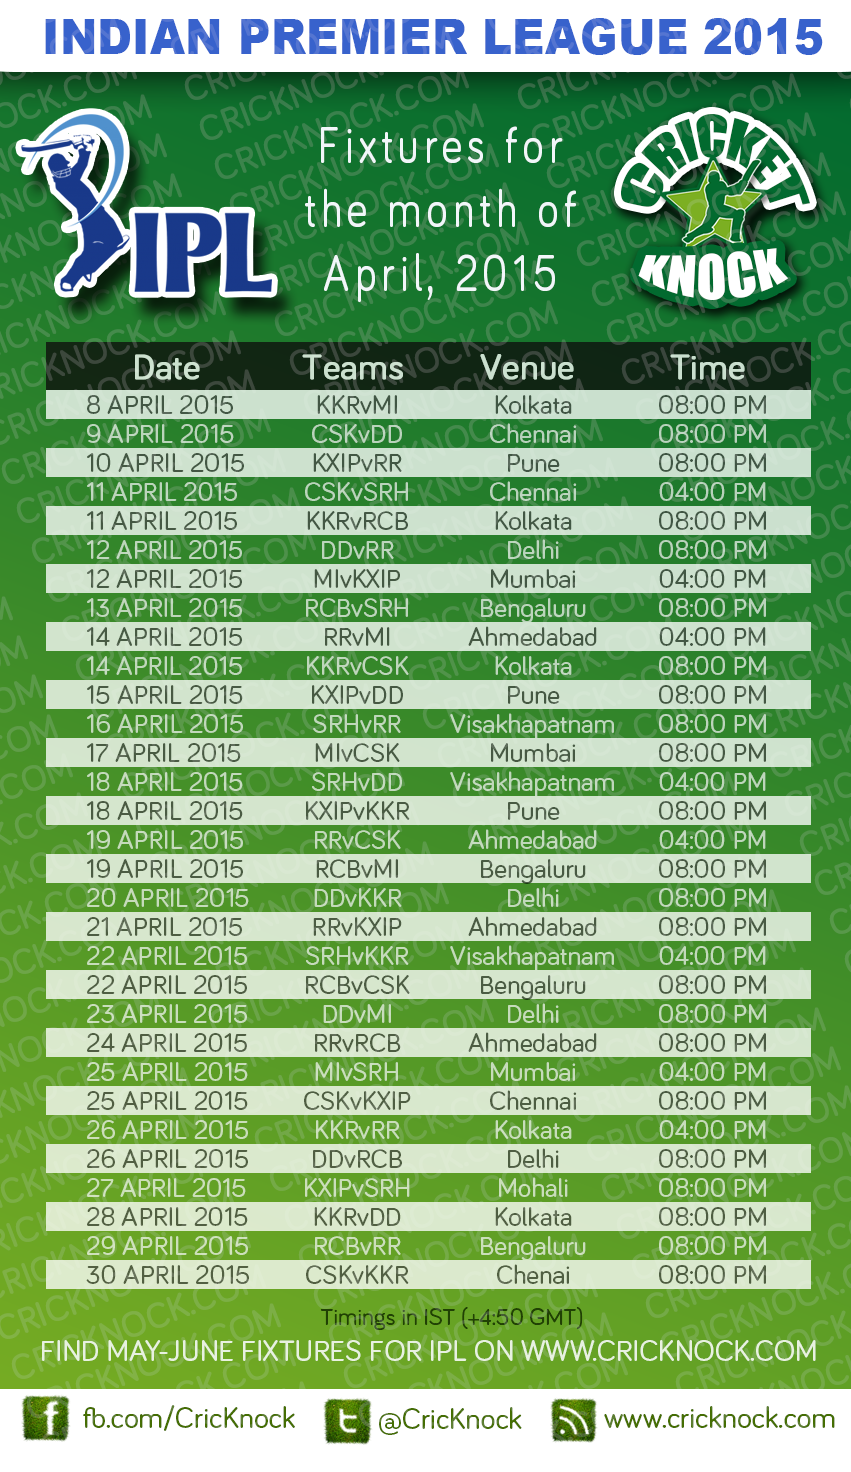 Indian Premier League - IPL T20 2015 Schedule